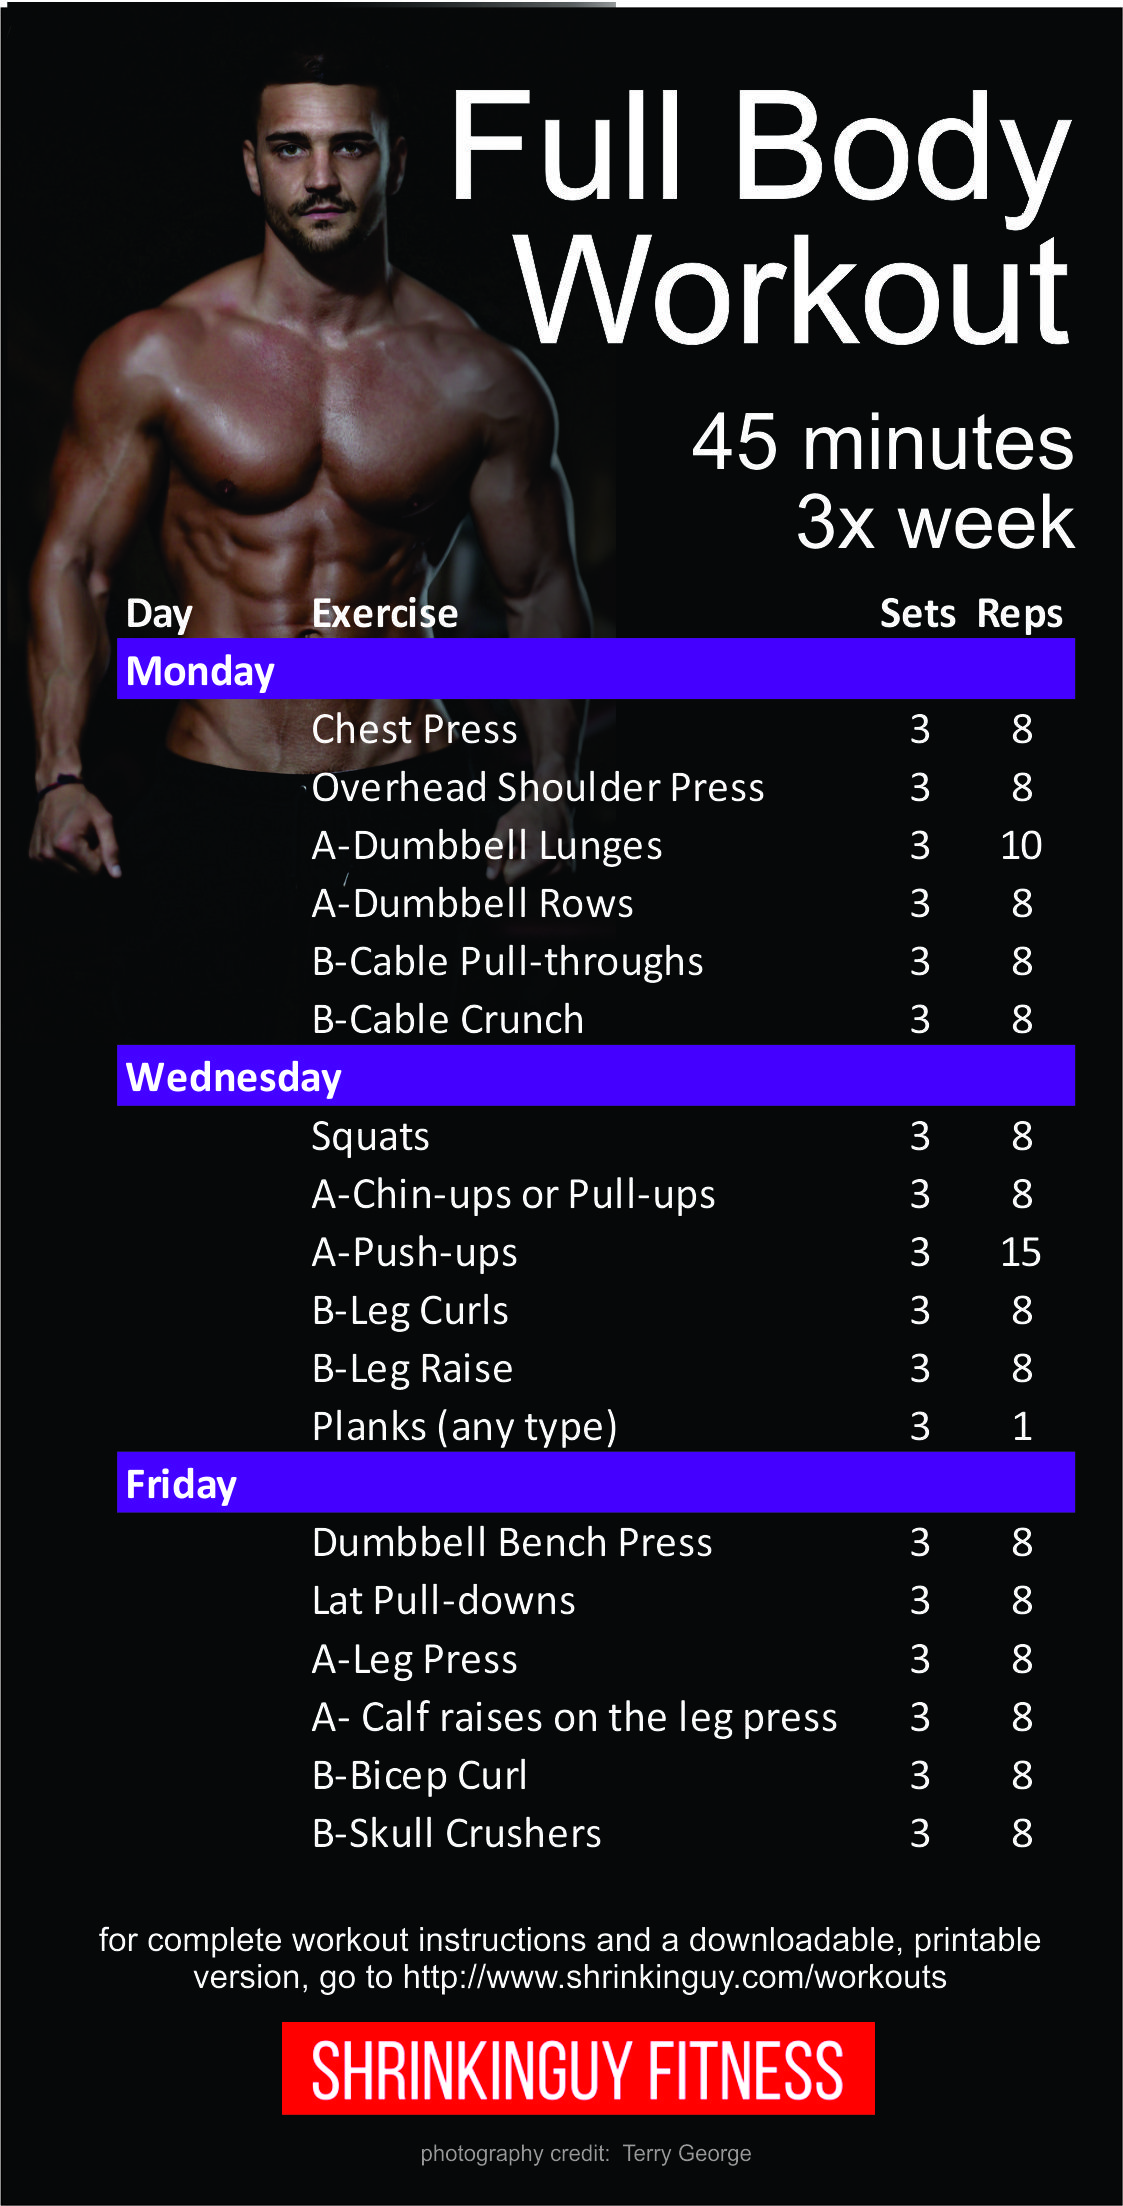 The dumbbell workout for total-body functional muscle